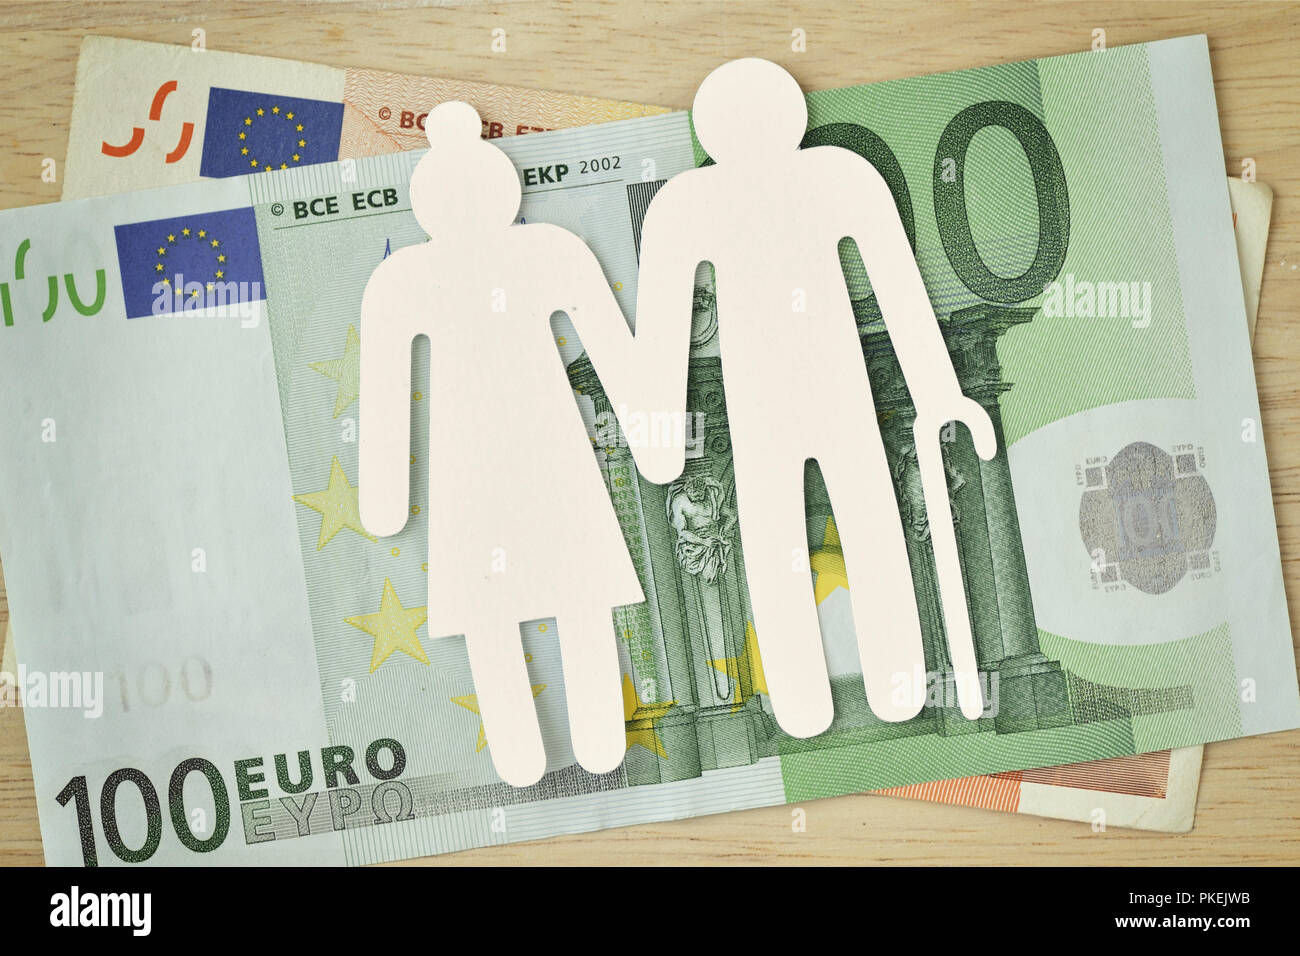 Paper elderly couple cut-out on euro banknotes - Pension concept Stock Photo